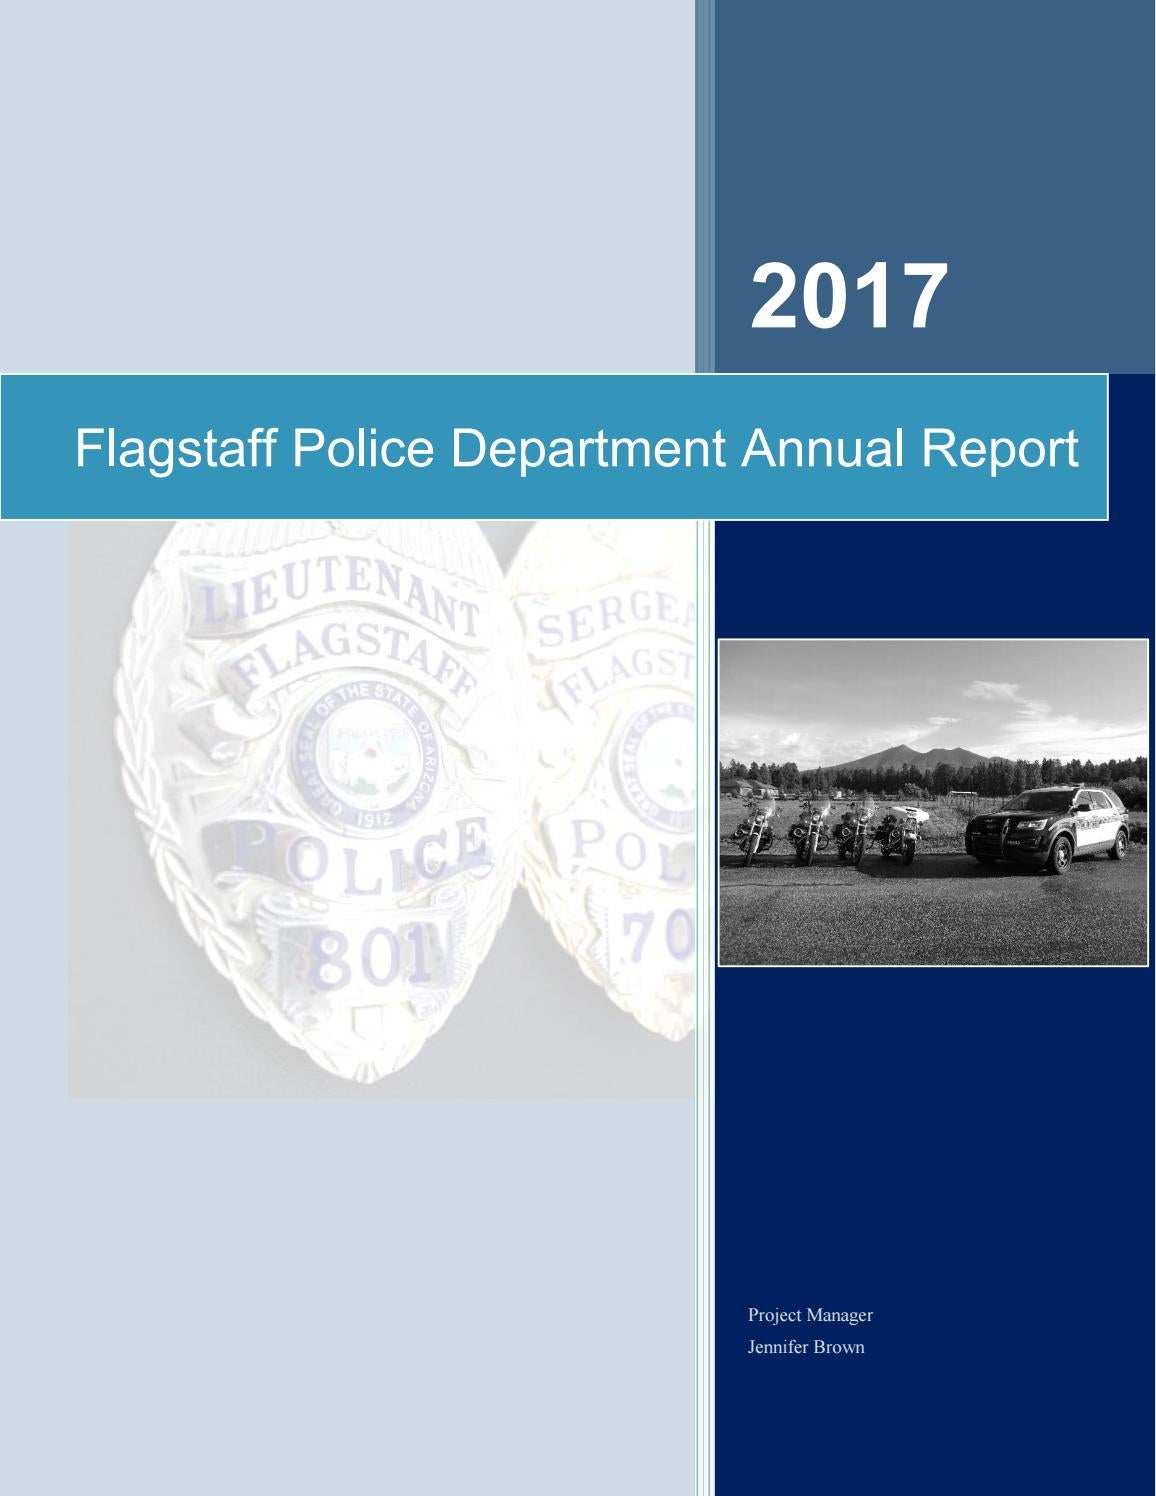 2017 FPD Annual Report by Jbrown22599 - issuu